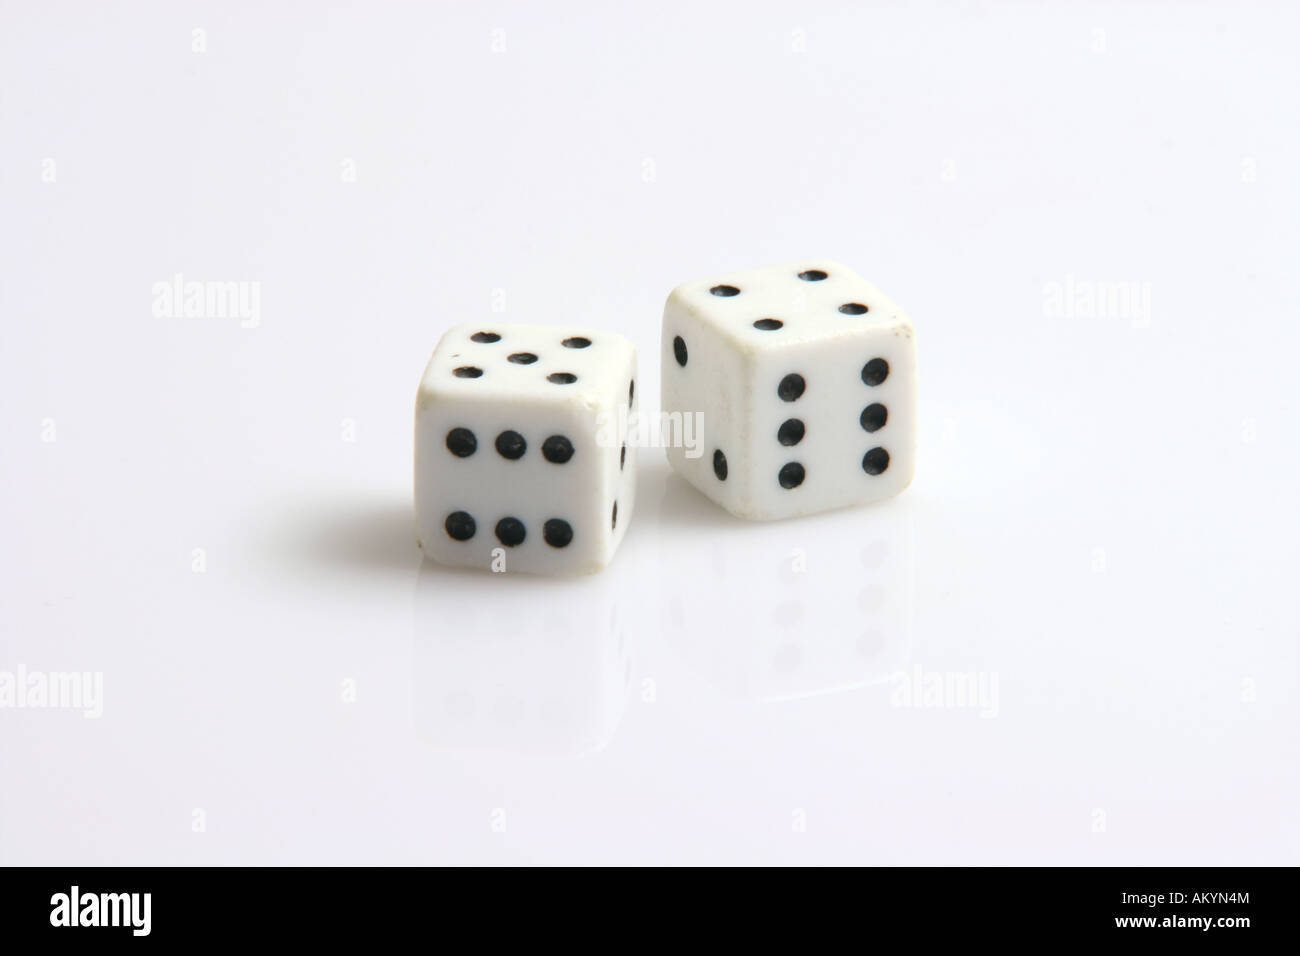 tow six dices on white background toys and leisure items - Stock Image